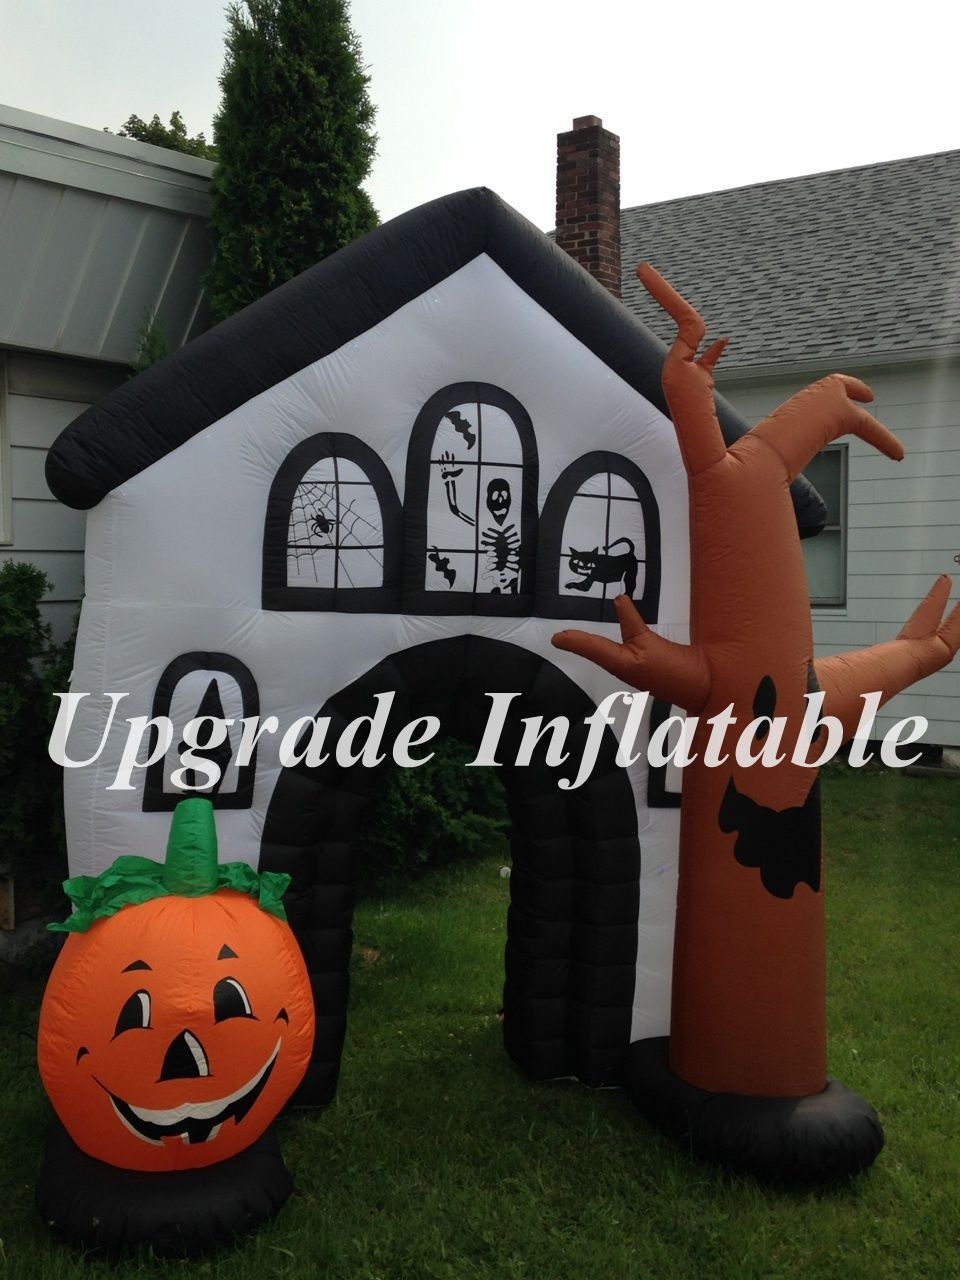 Outdoor inflatable halloween decorations - 9ft Haunted House Inflatable Outdoor Halloween Decorations With Led Lights